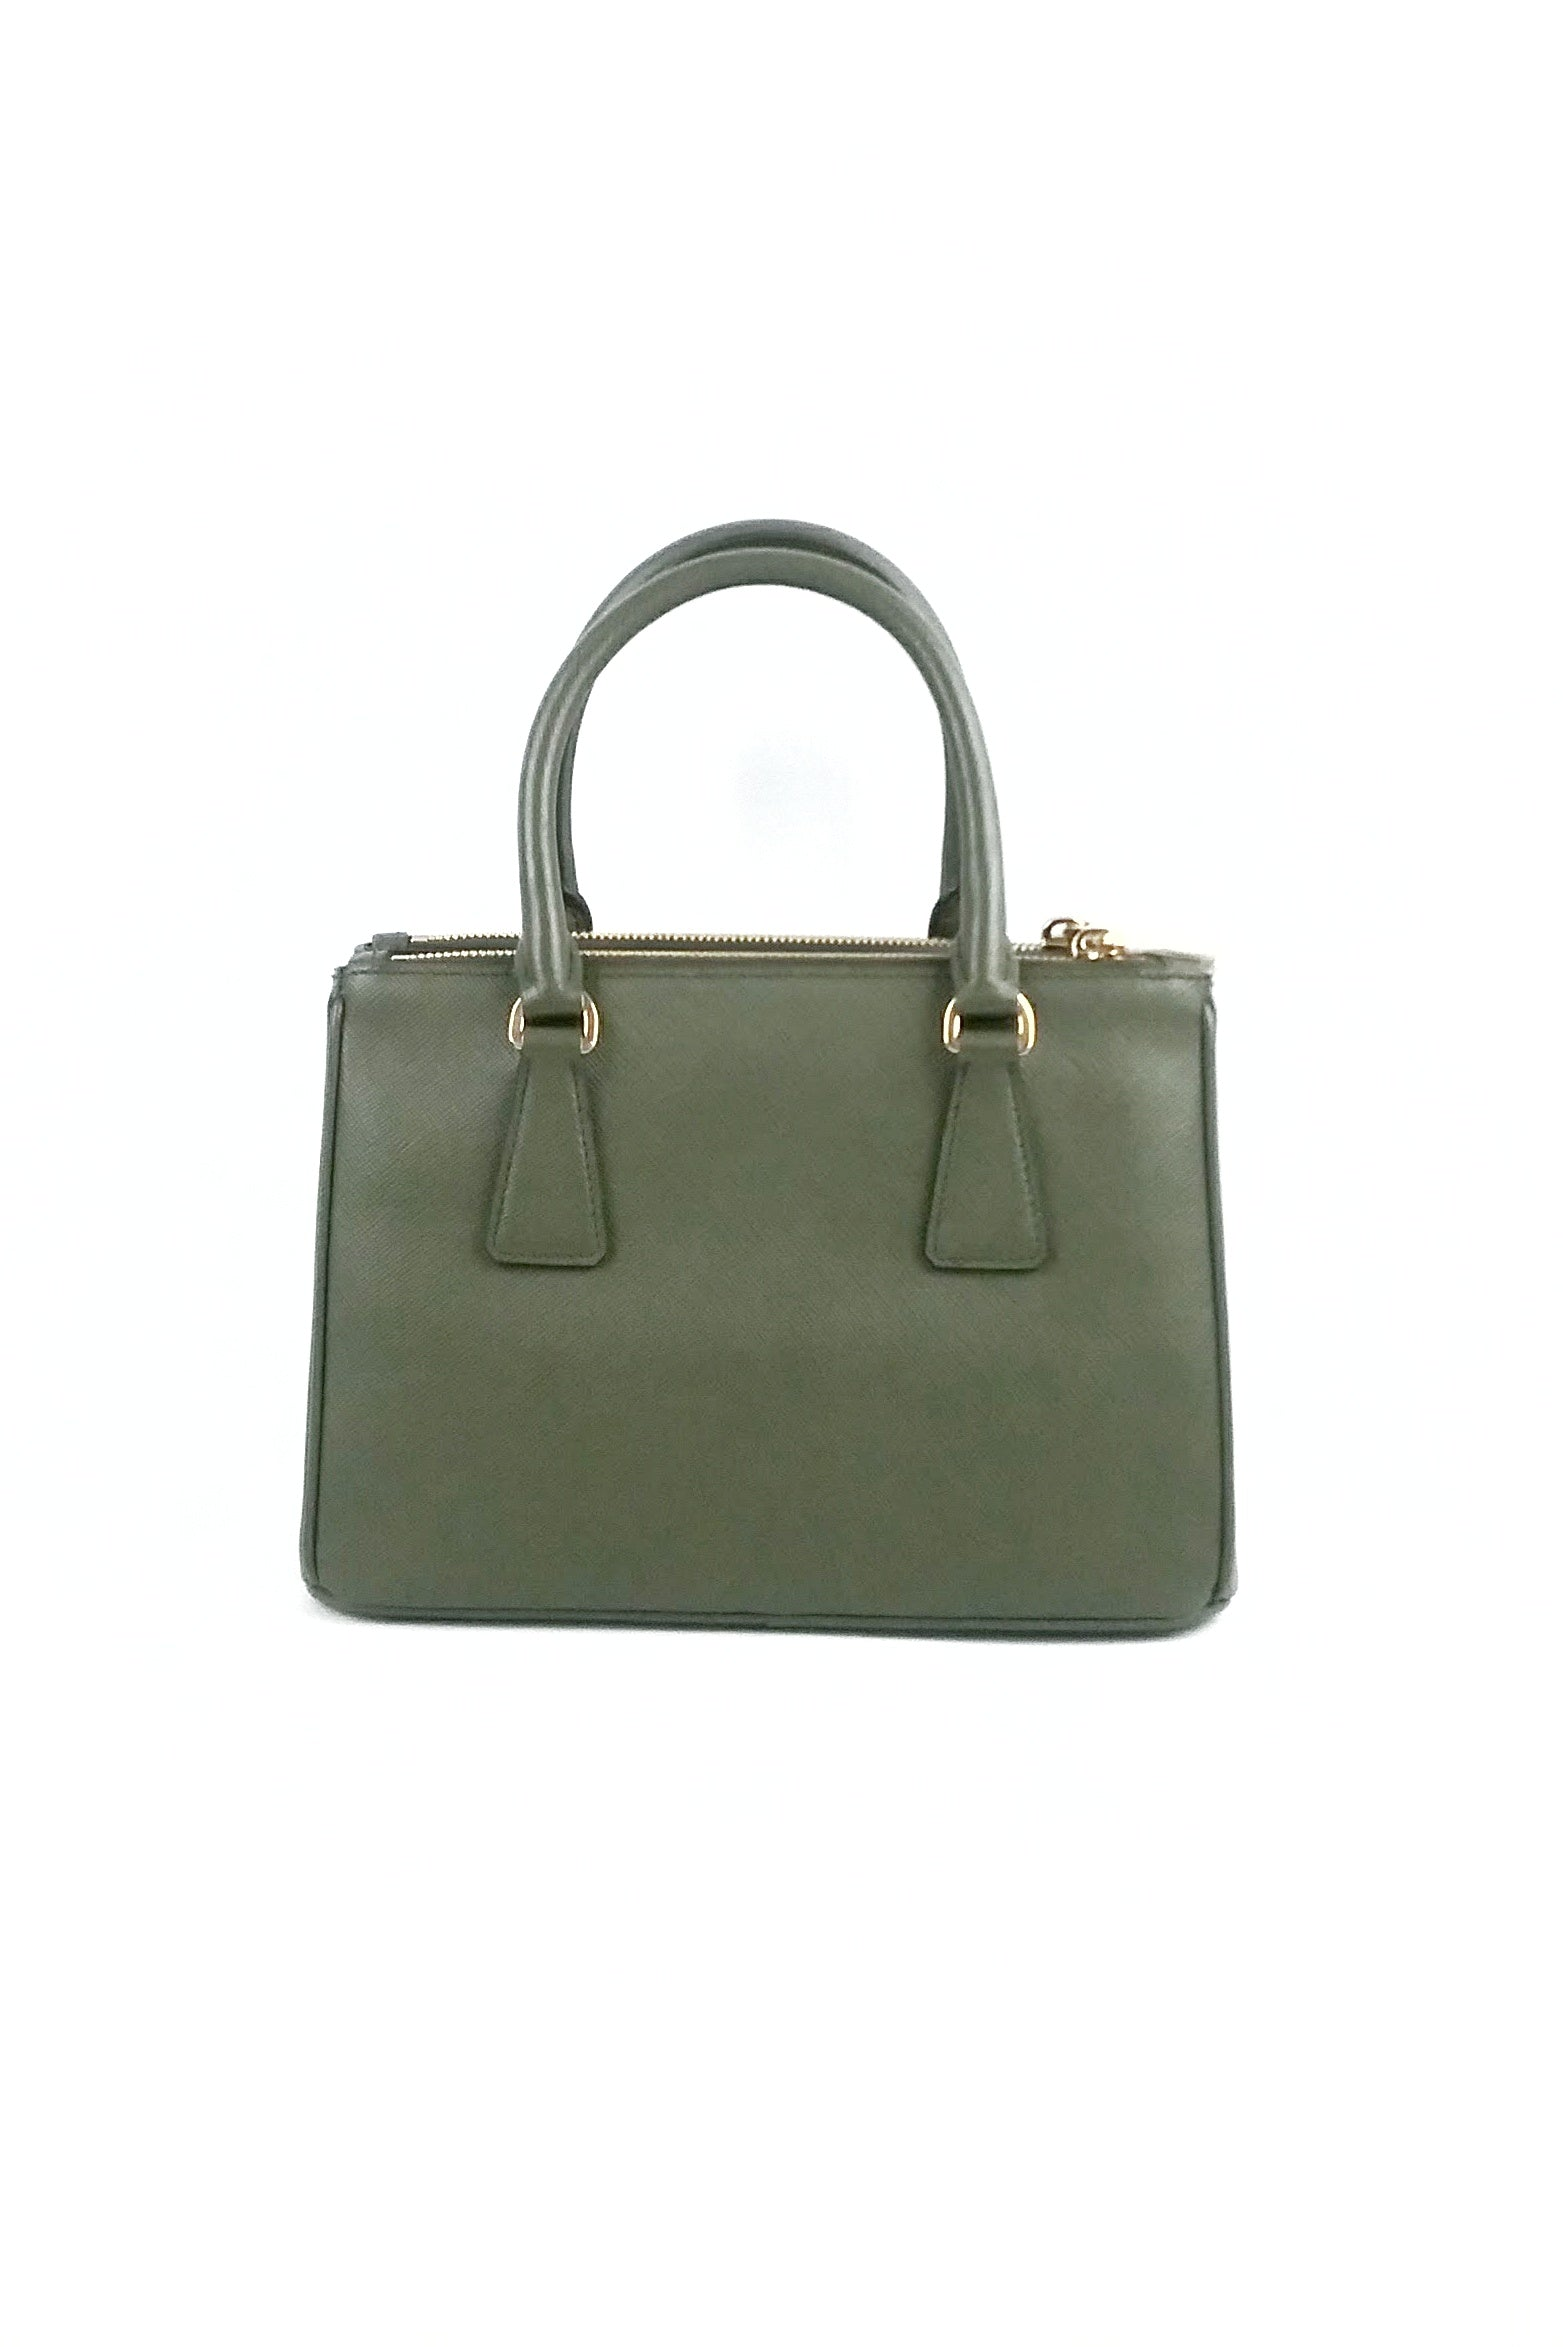 Military Green Saffiano Leather Small Galleria Tote